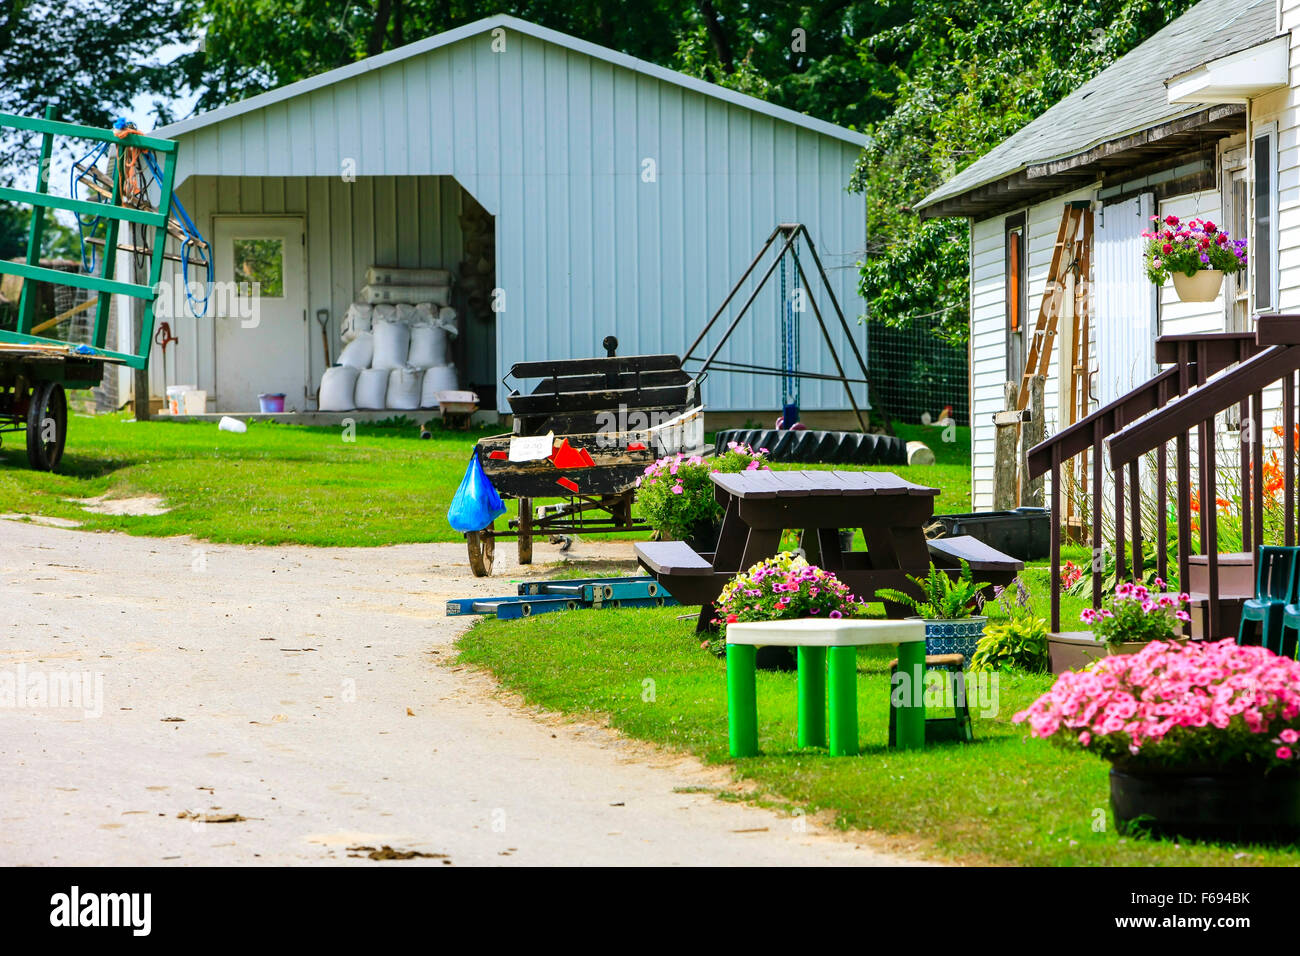 Amish farm in rural Wisconsin with the mod-cons of Civil War